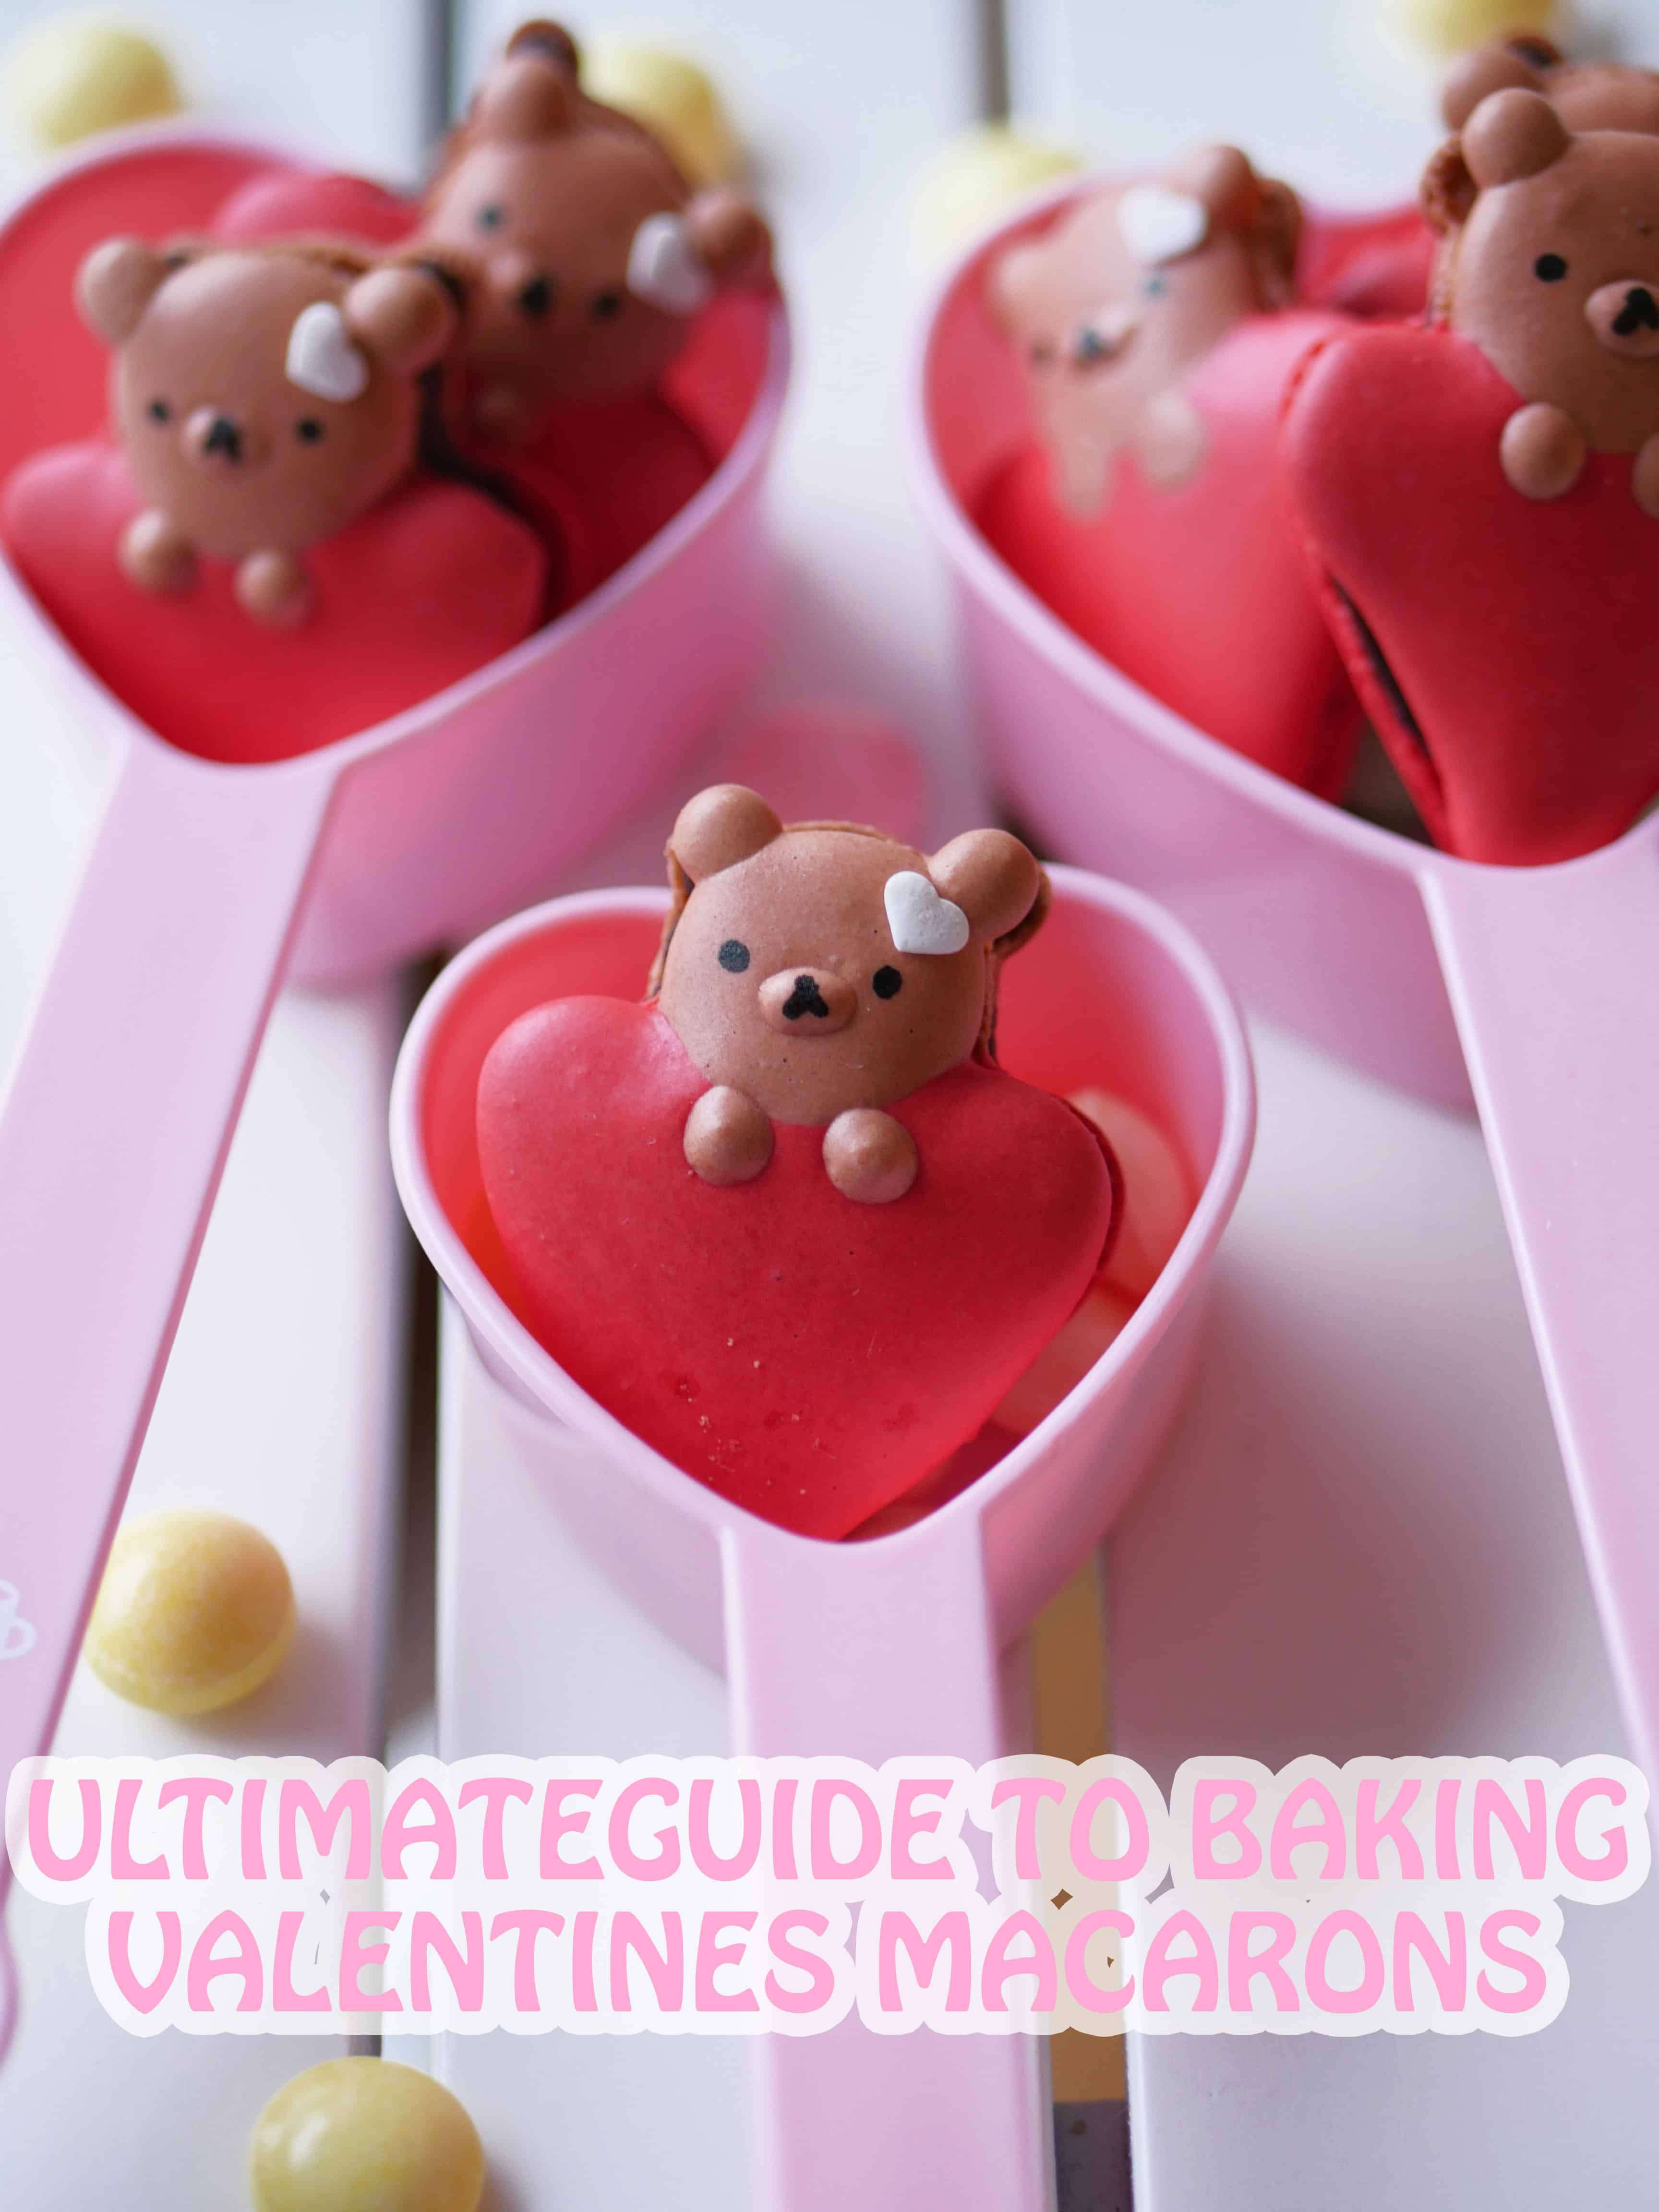 bear on heart macarons in a heart cup.